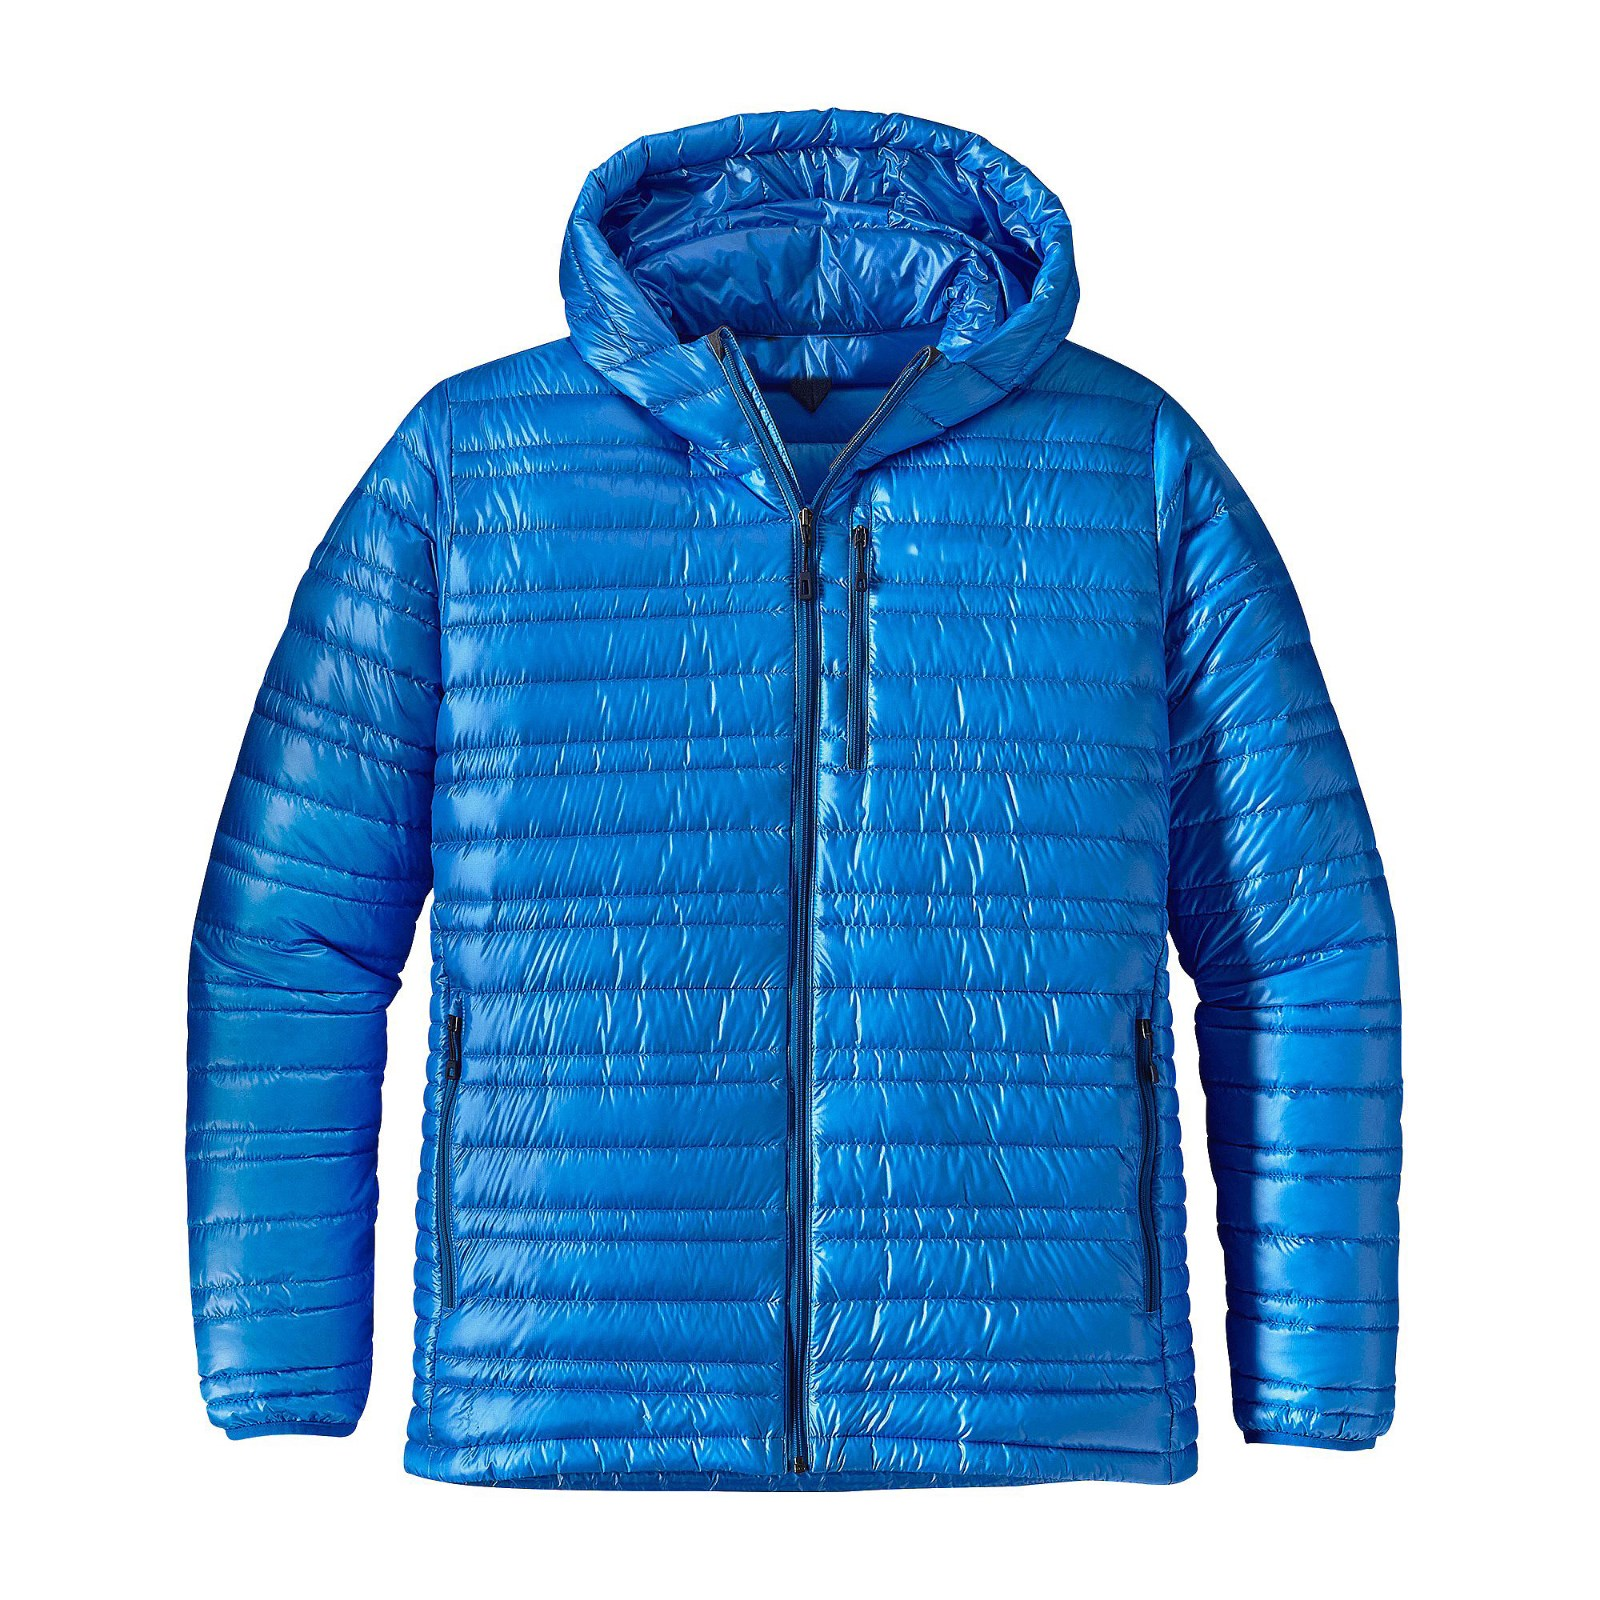 Men's Ultralight Down Hoody Jacket